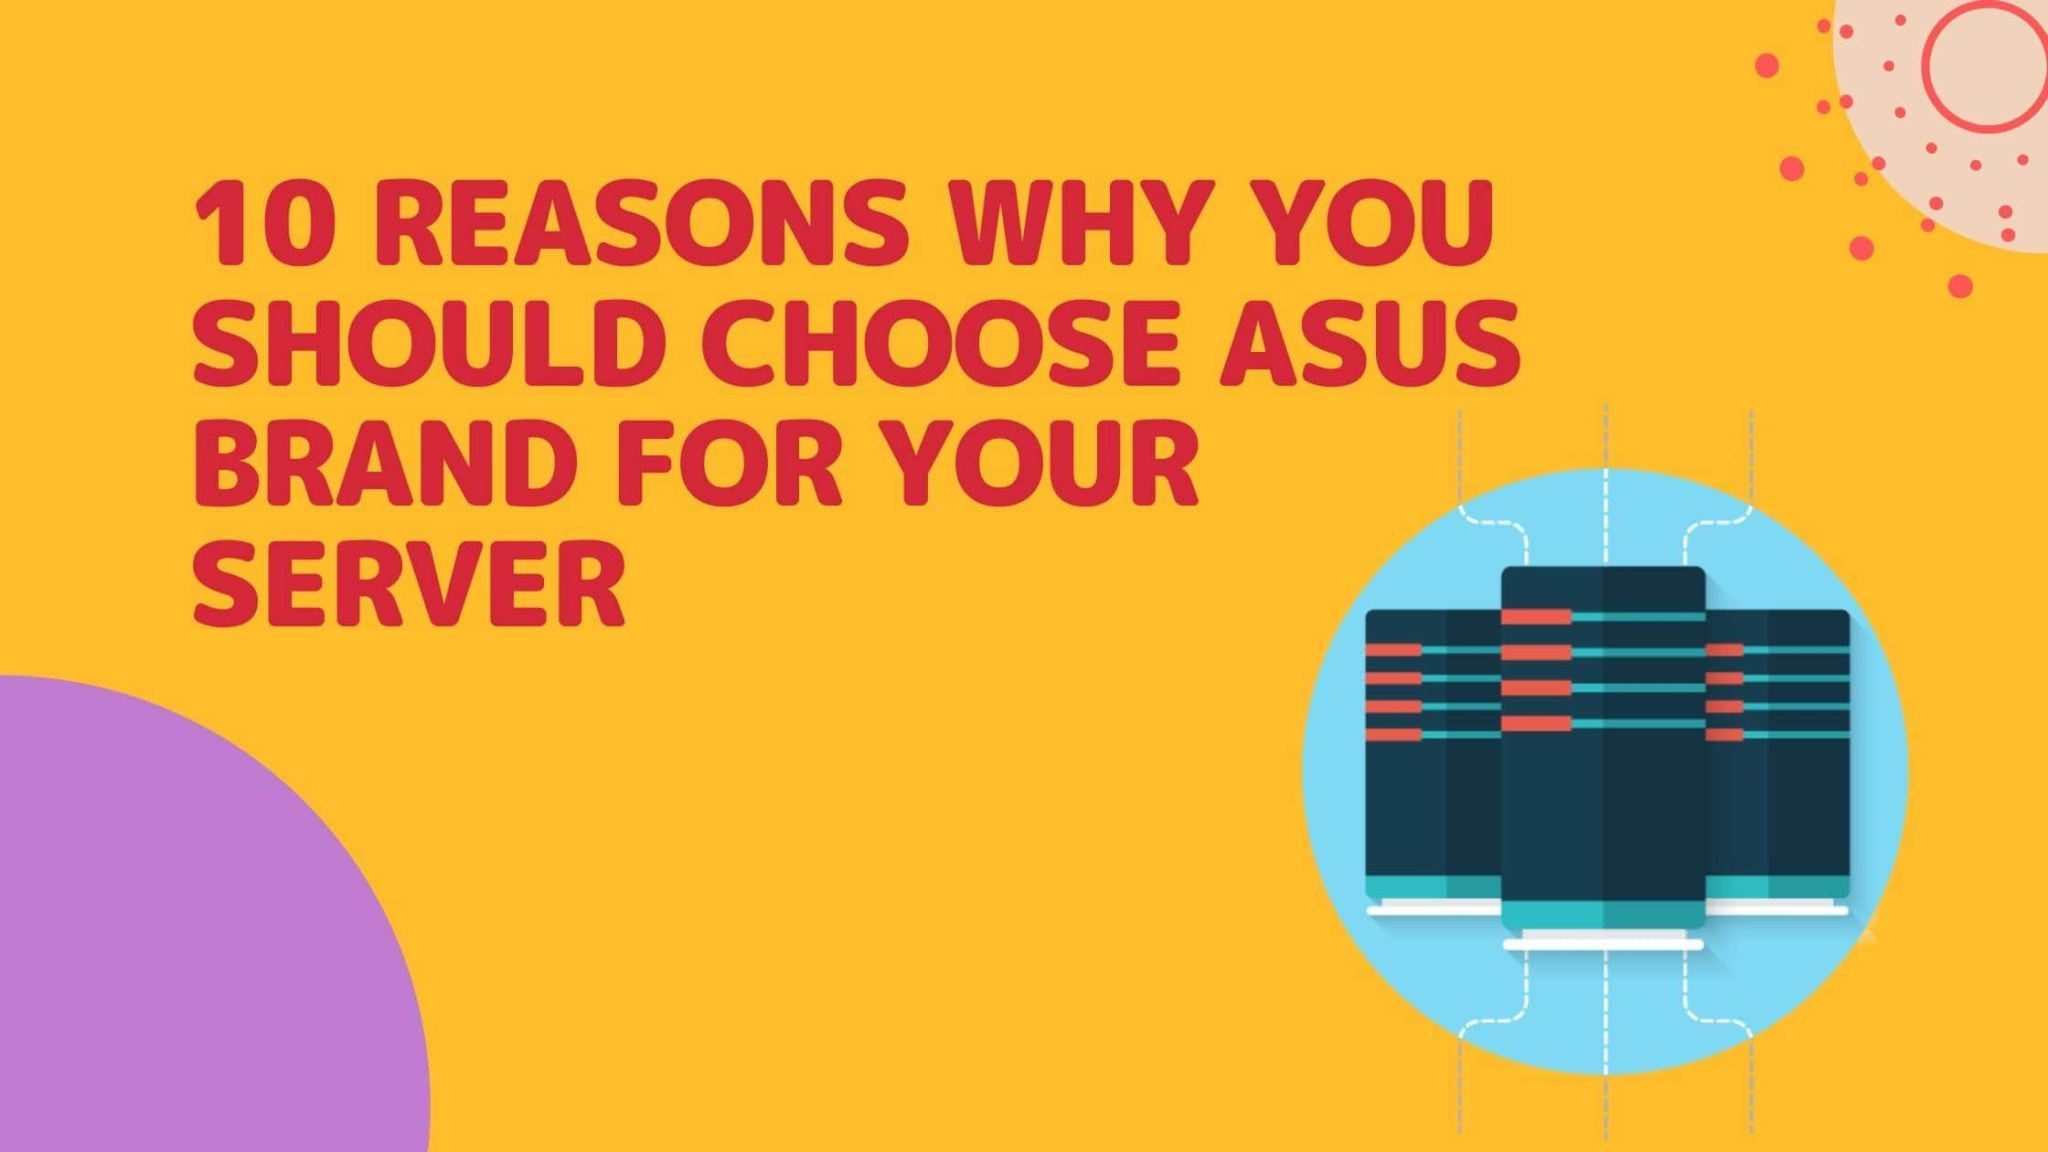 10 reasons why you should choose ASUS brand for your server